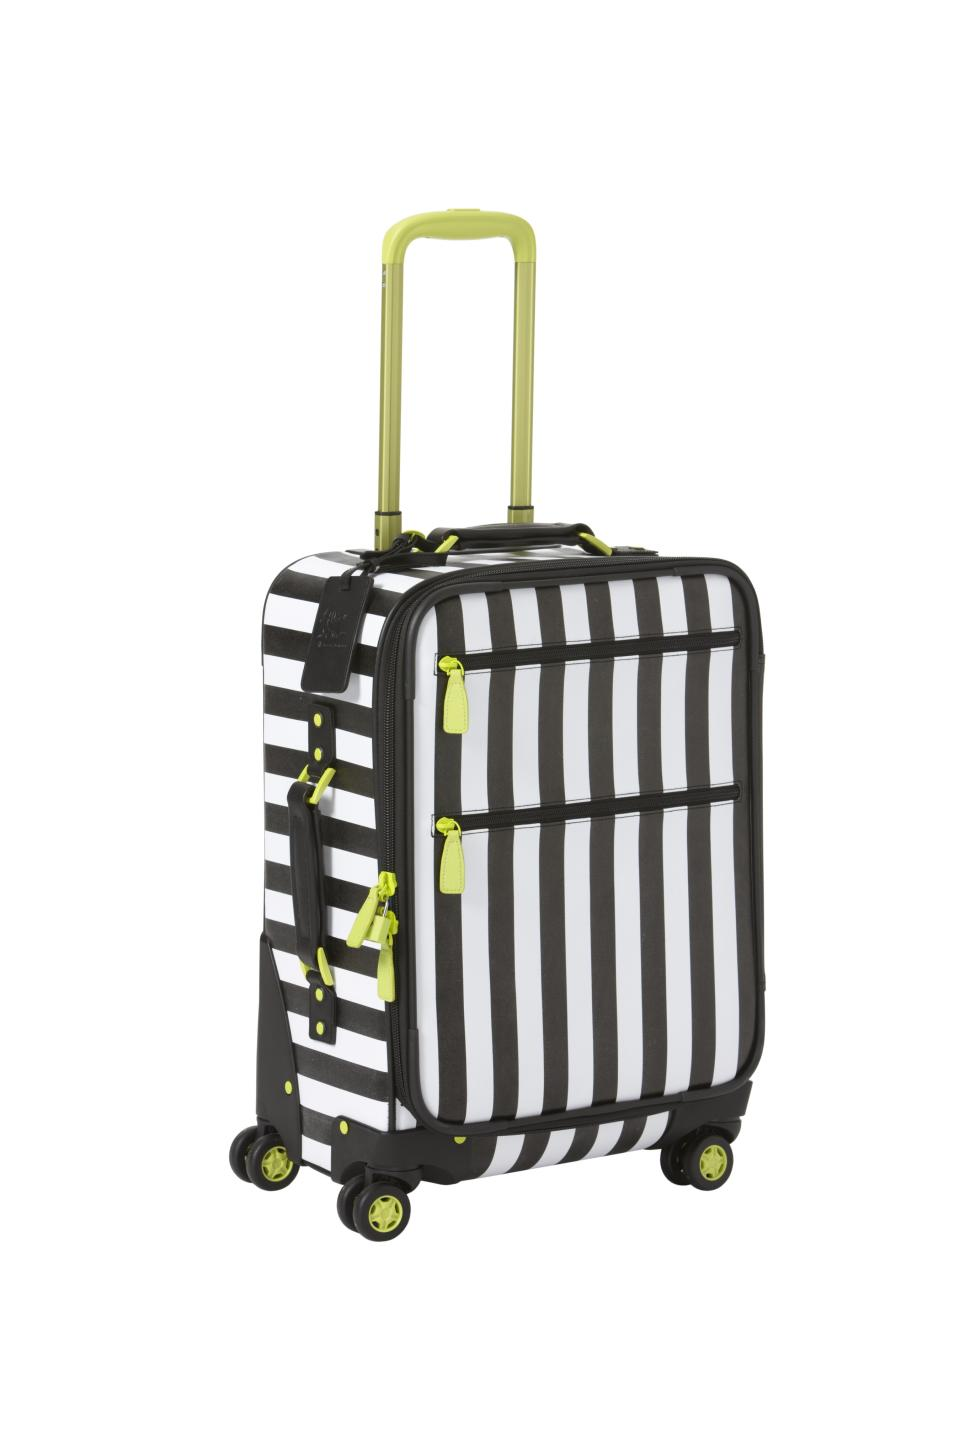 <b>Alice + Olivia for Target + Neiman Marcus Holiday Collection Luggage</b><br><br> Price: $179.99<br><br>